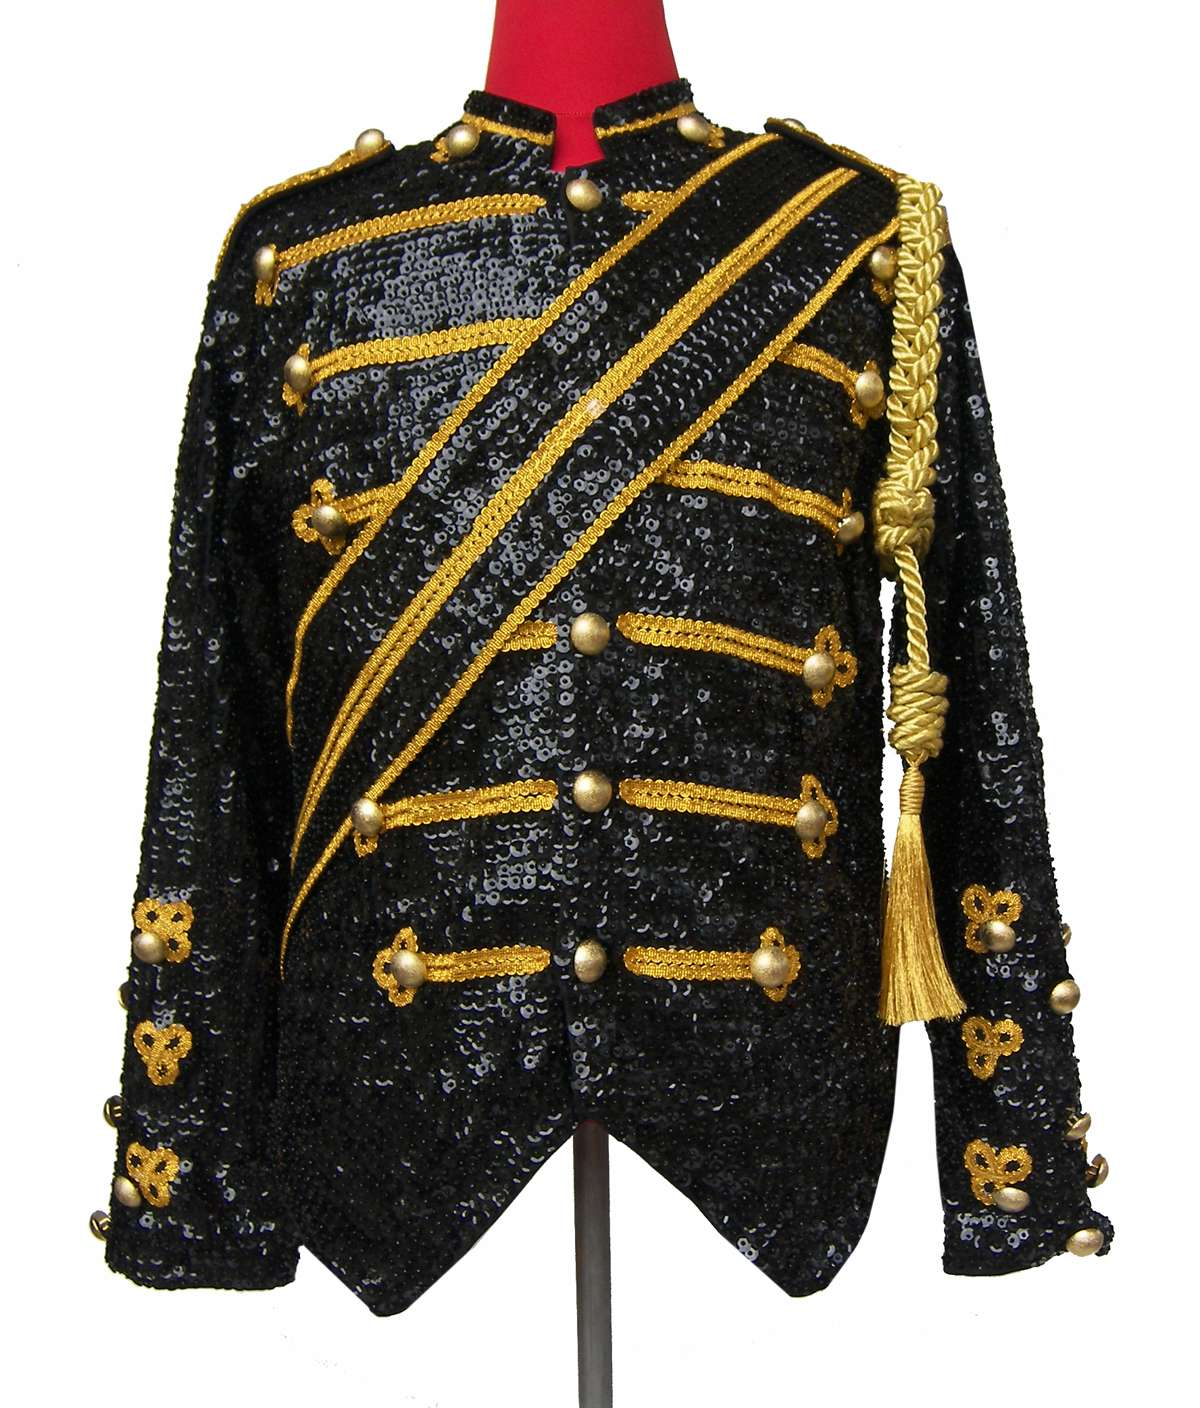 MJ-Pics/mj-walk-of-fame-jacket/MJ%20walk%20of%20fame%20jacket.jpg